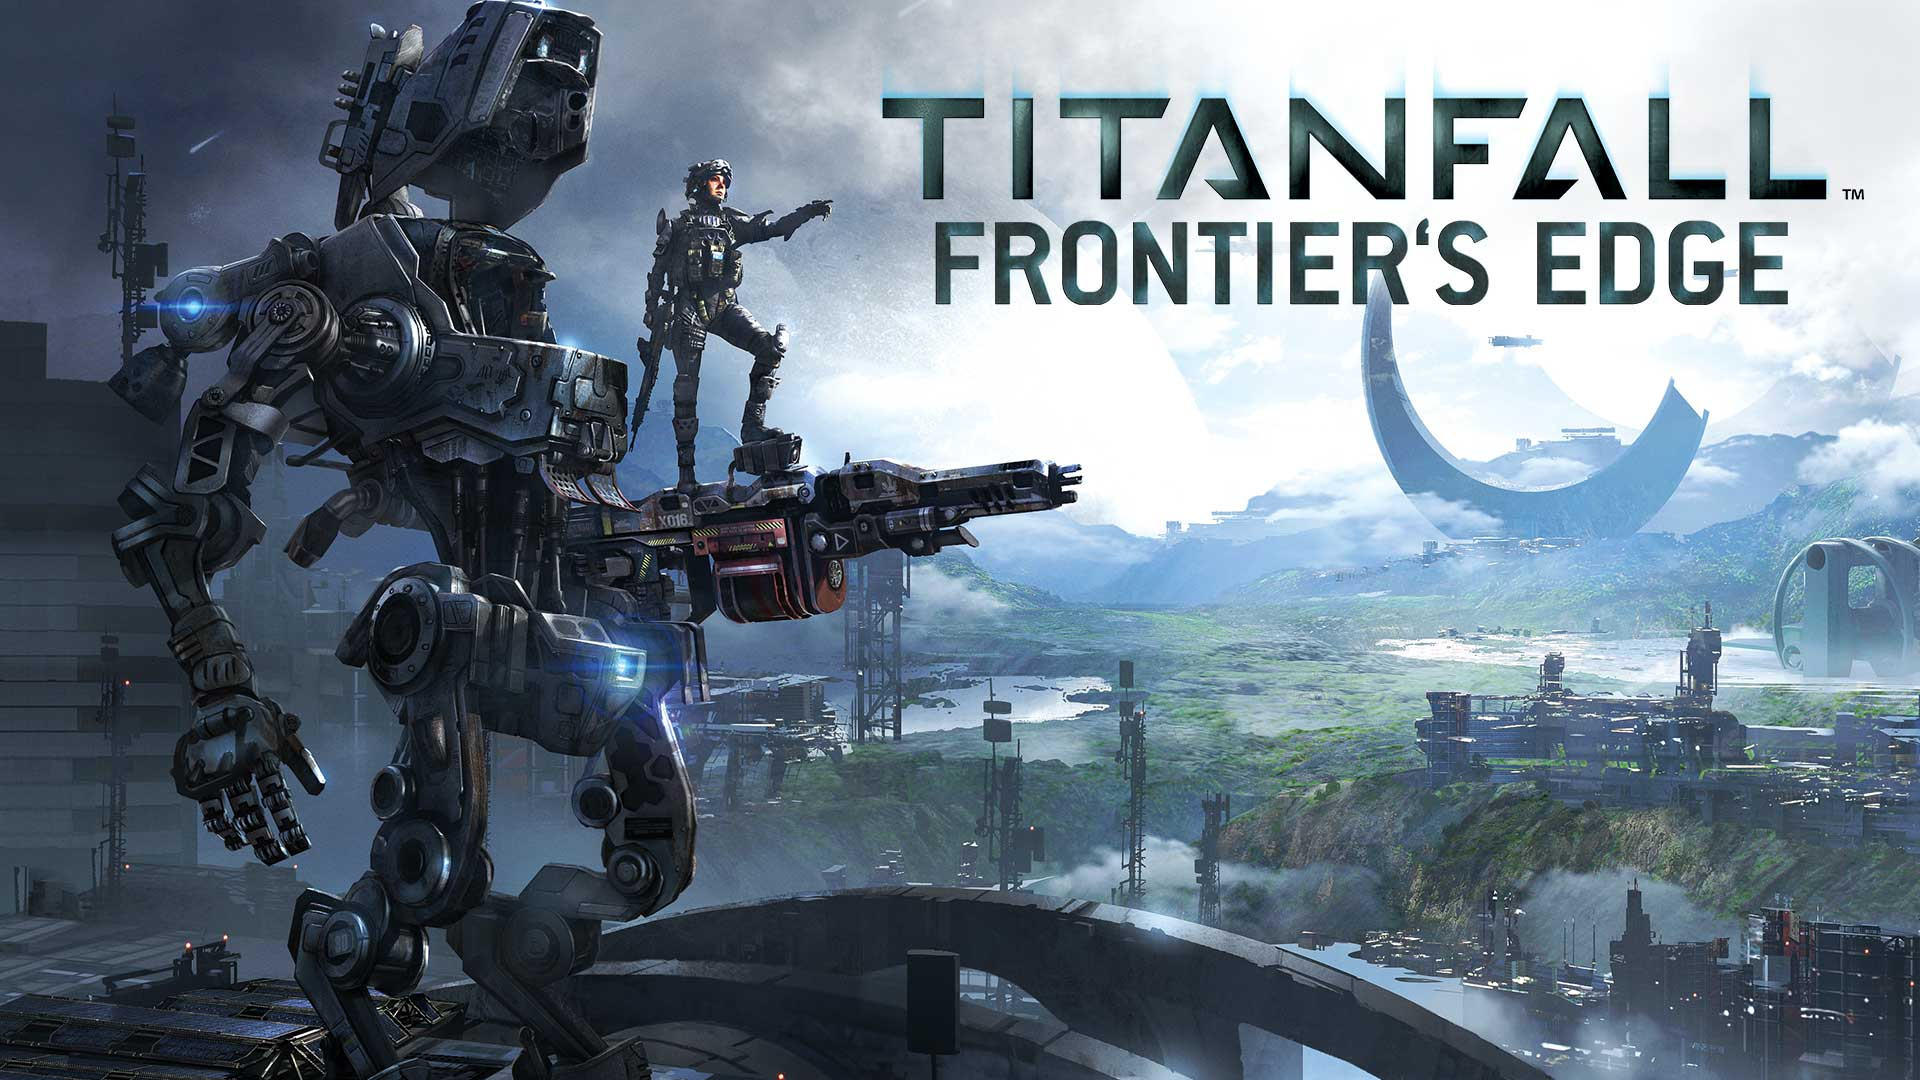 Titanfall: Frontier's Edge Release Date Announced in SDCC Video